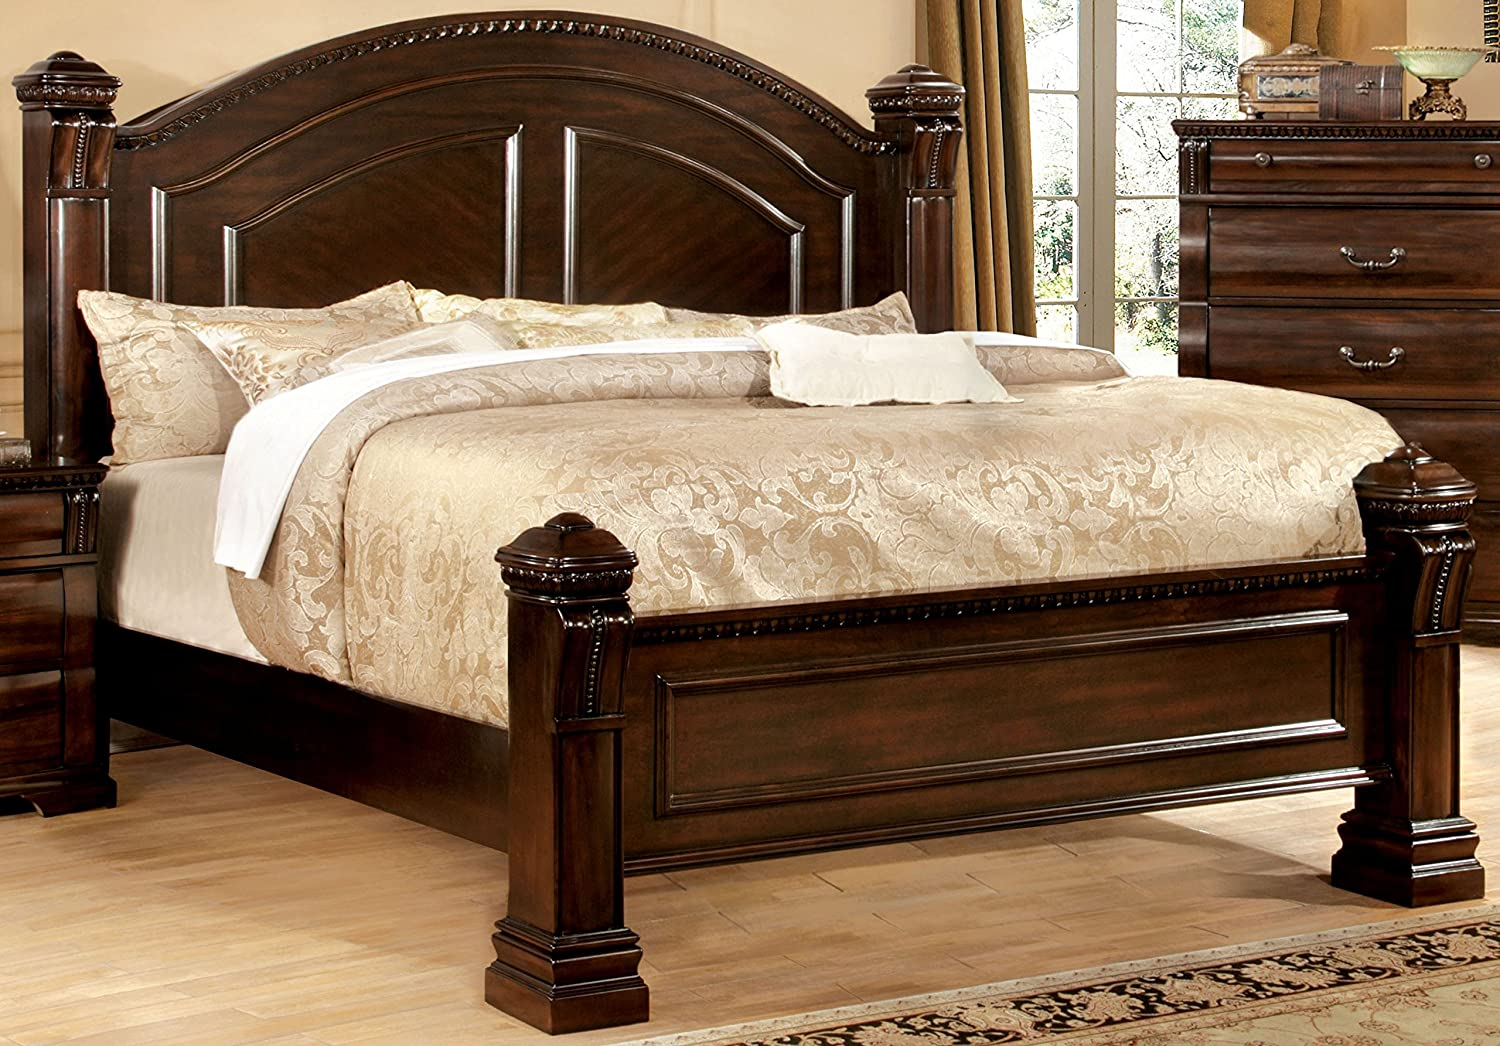 Furniture of America Lexington Low-Poster Bed, Eastern King, Cherry